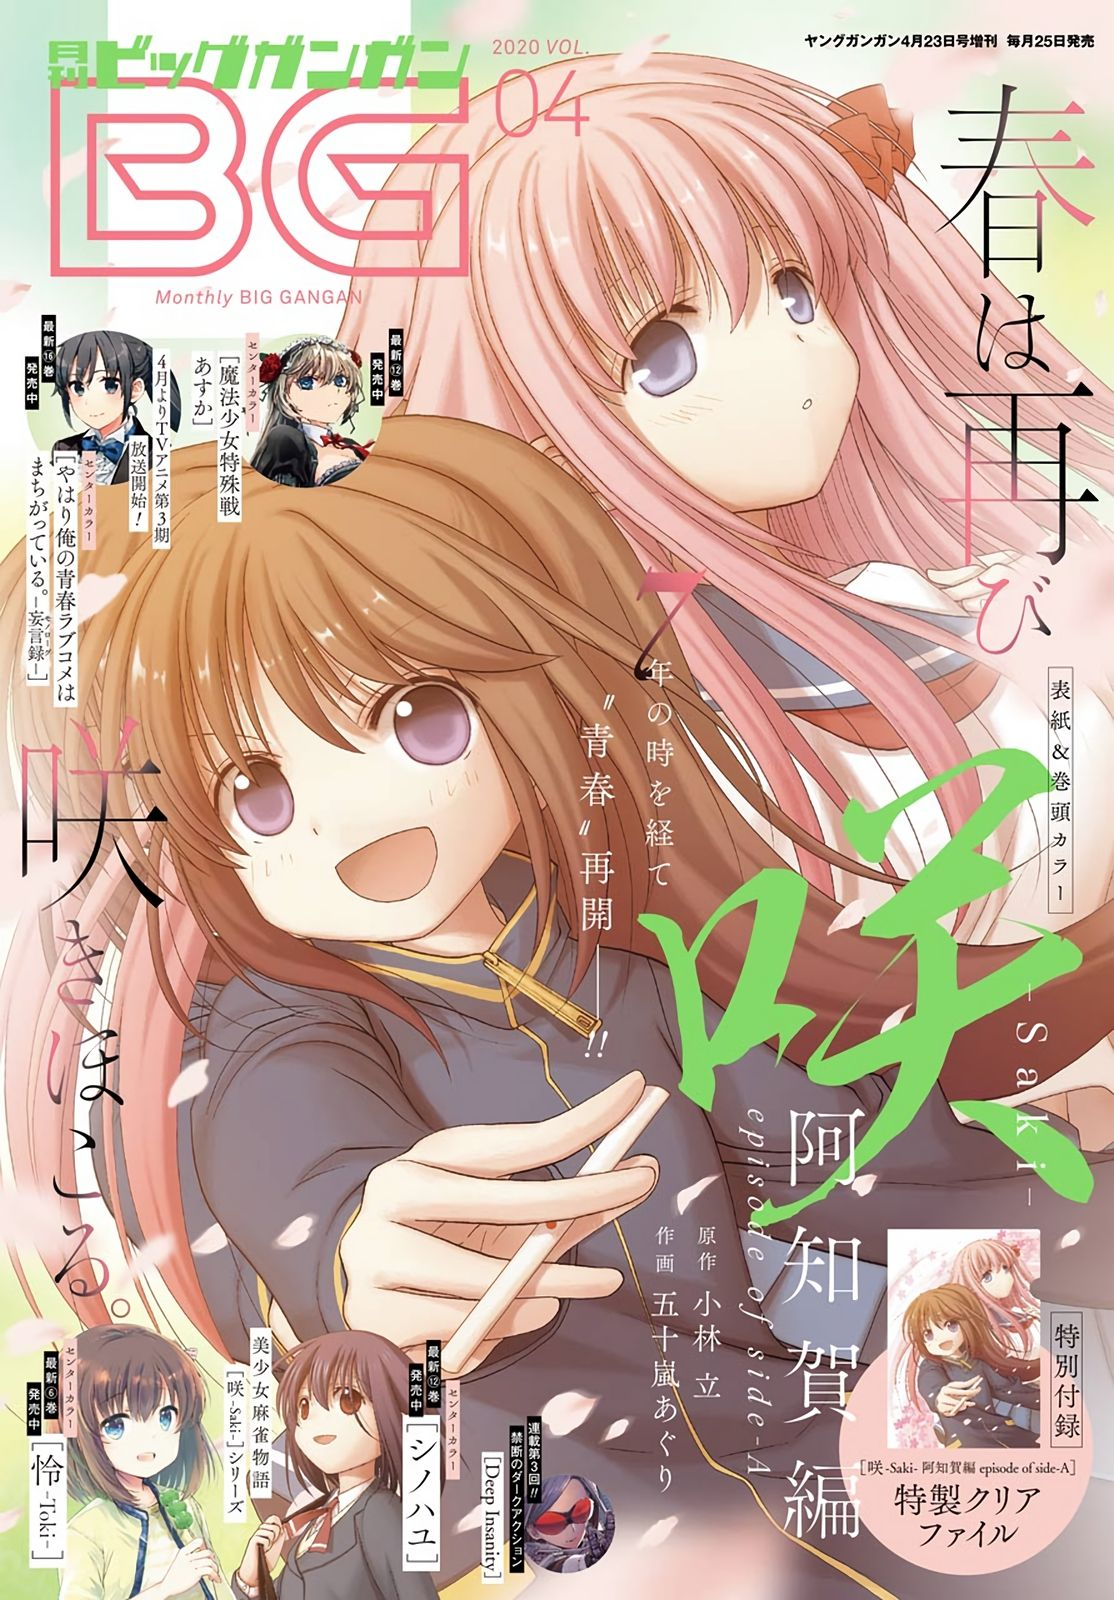 Saki: Achiga-hen - episode of side-A - new series - chapter 21 - #1